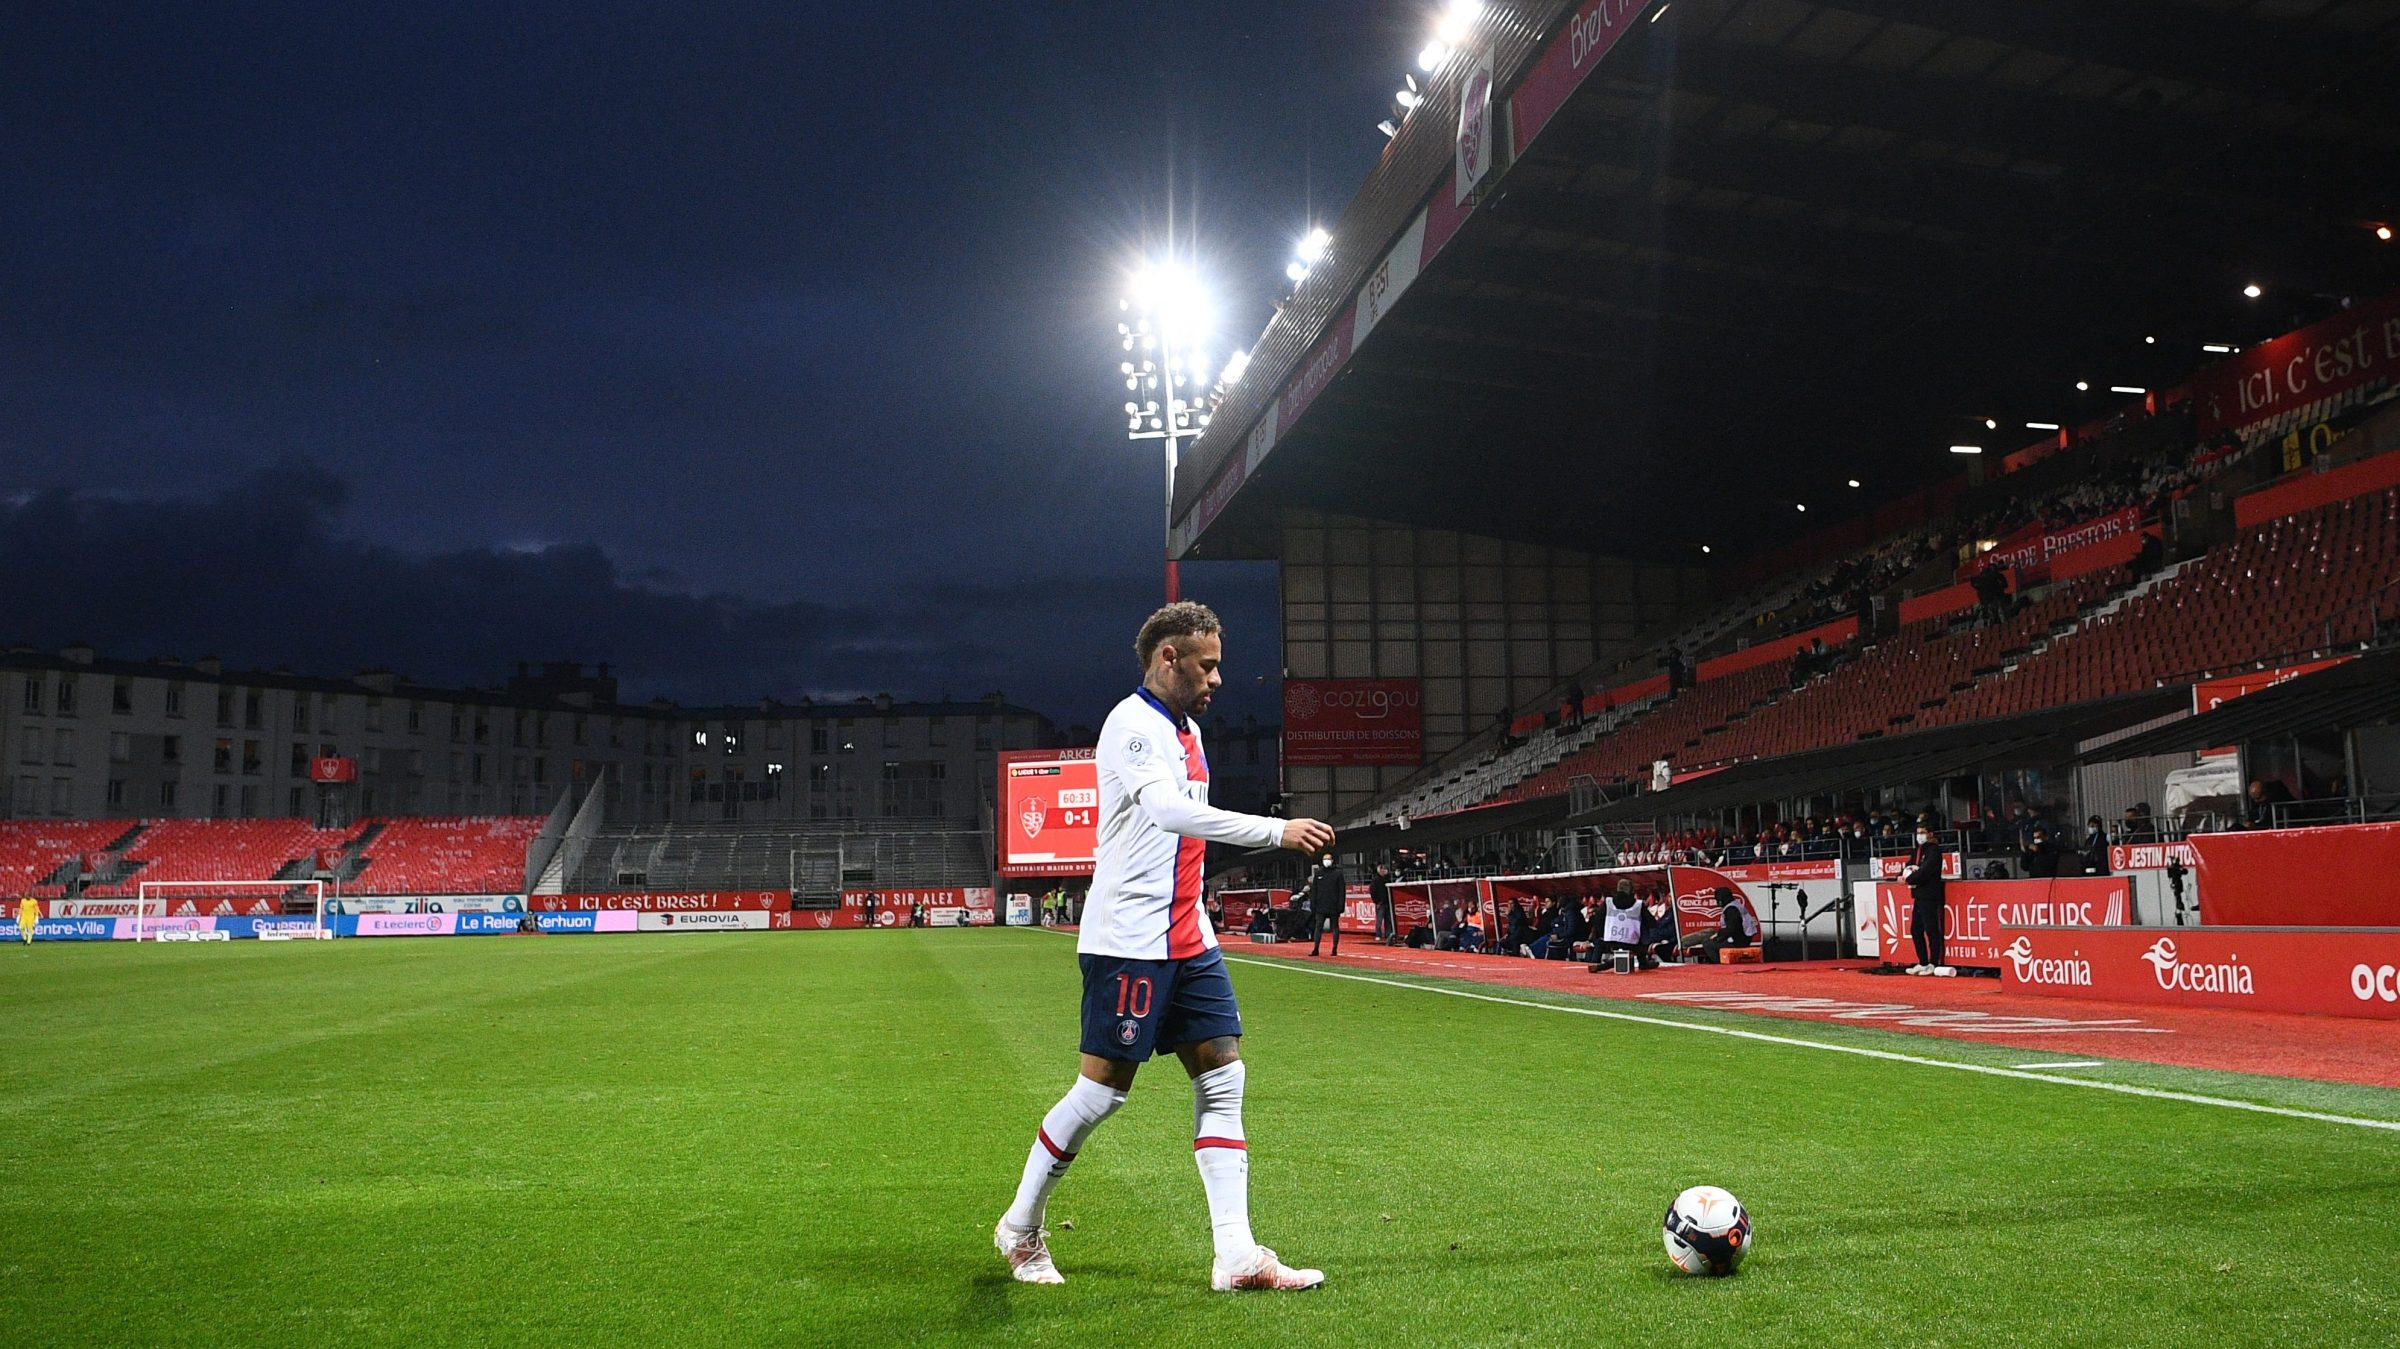 Paris Saint-Germain's Brazilian forward Neymar controls the ball during the French L1 football match between Brest and Paris Saint-Germain at the Stade Francis-Le Ble stadium, in Brest, western France, on May 23, 2021.